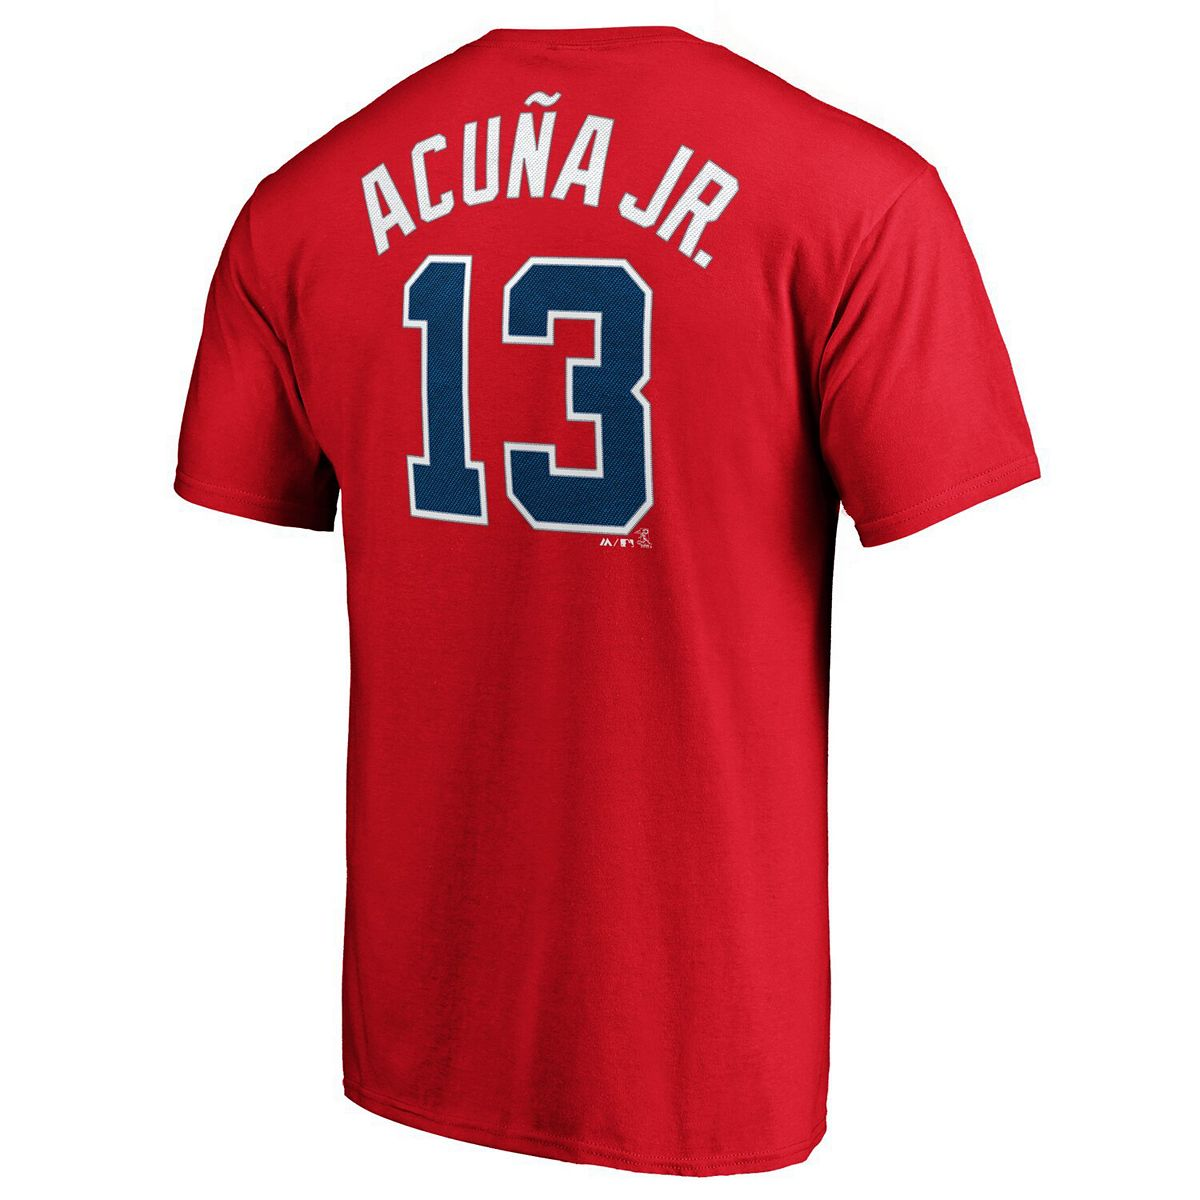 Men's Majestic Ronald Acuna Jr. Red Atlanta Braves Official Player Name & Number T-Shirt qF7tk